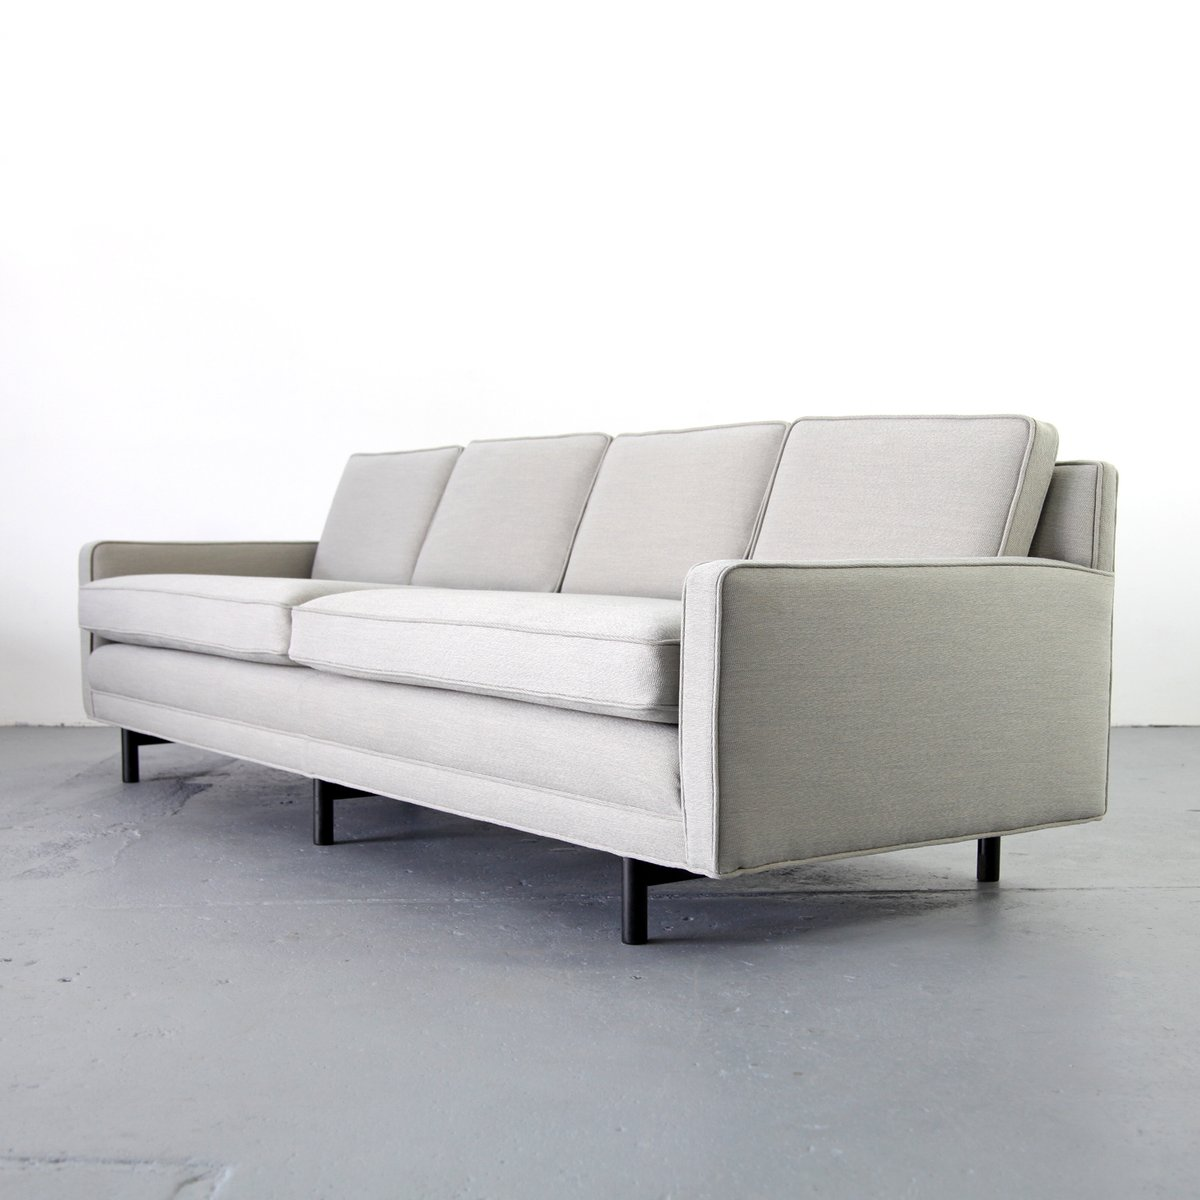 sofa 4 seater bed queen sleeper by paul mccobb for directional sale at